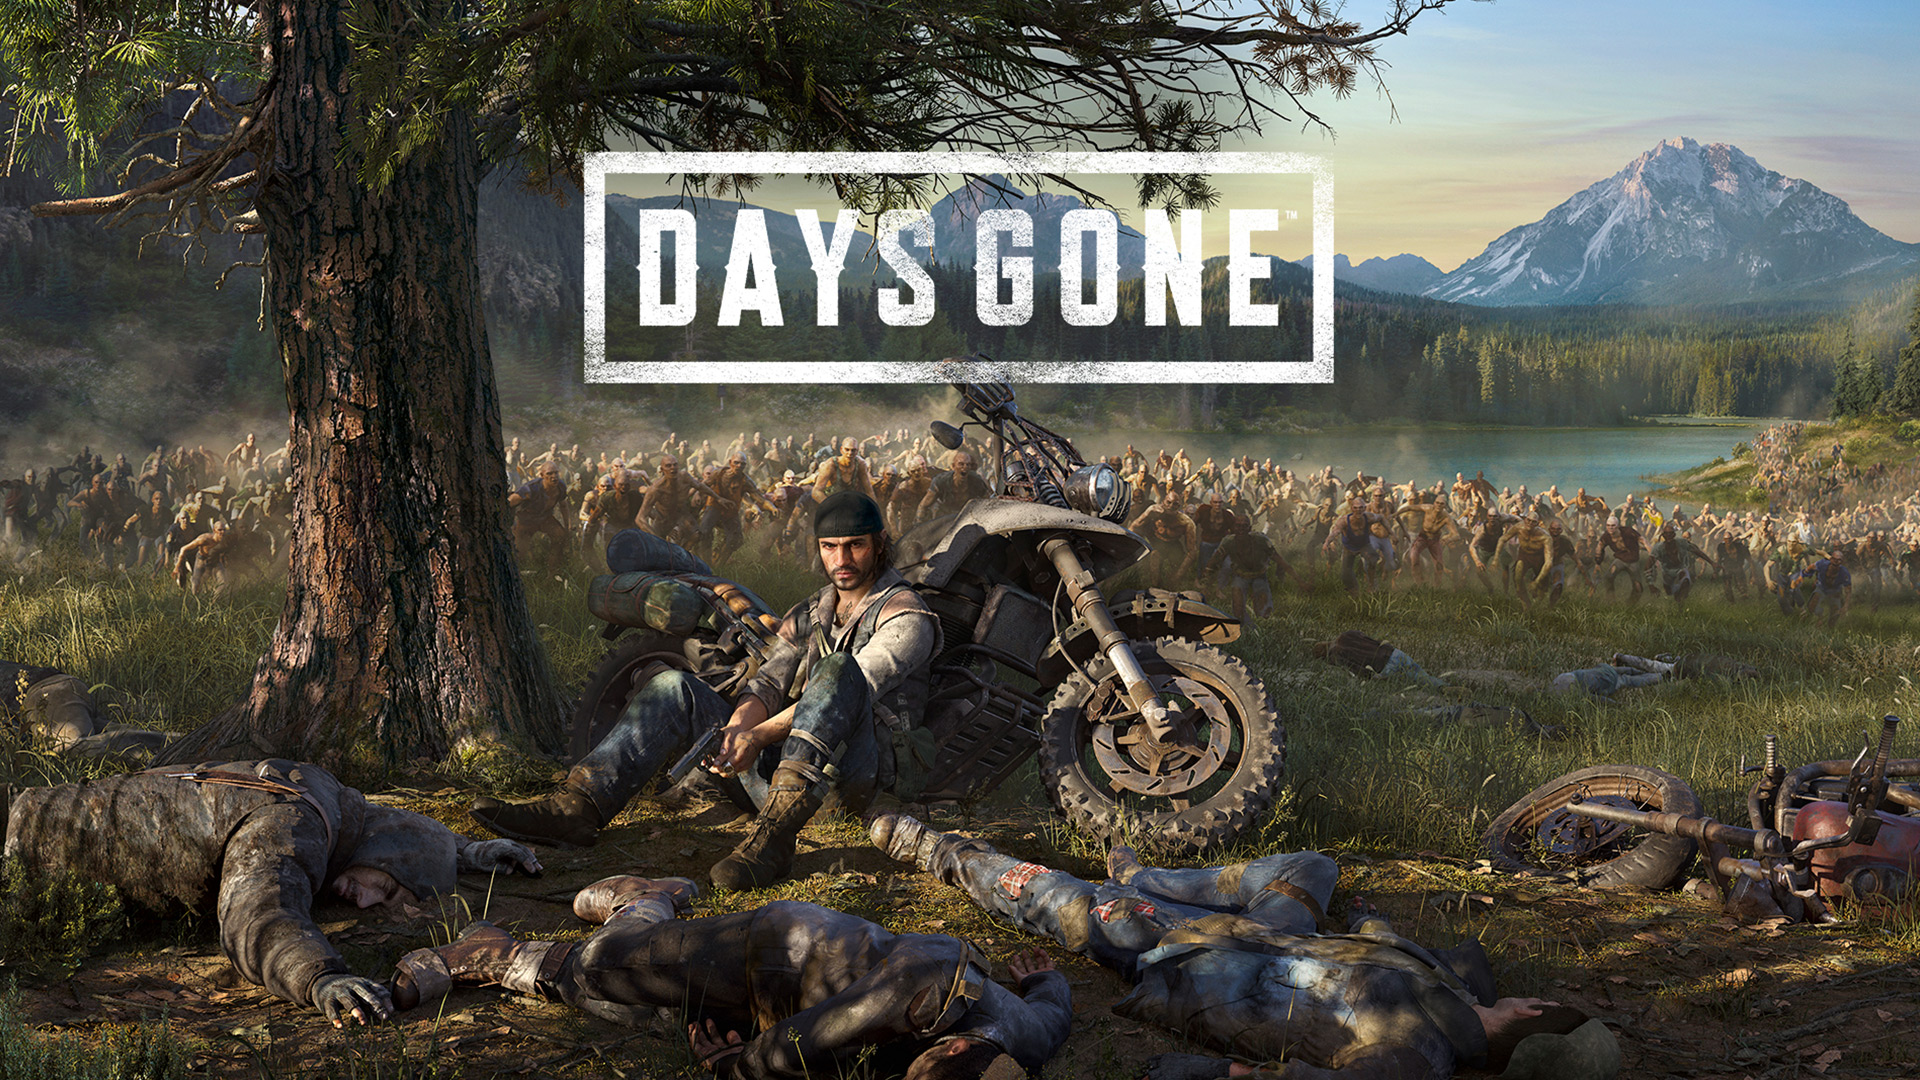 Days-gone-sony-artwork-packaging